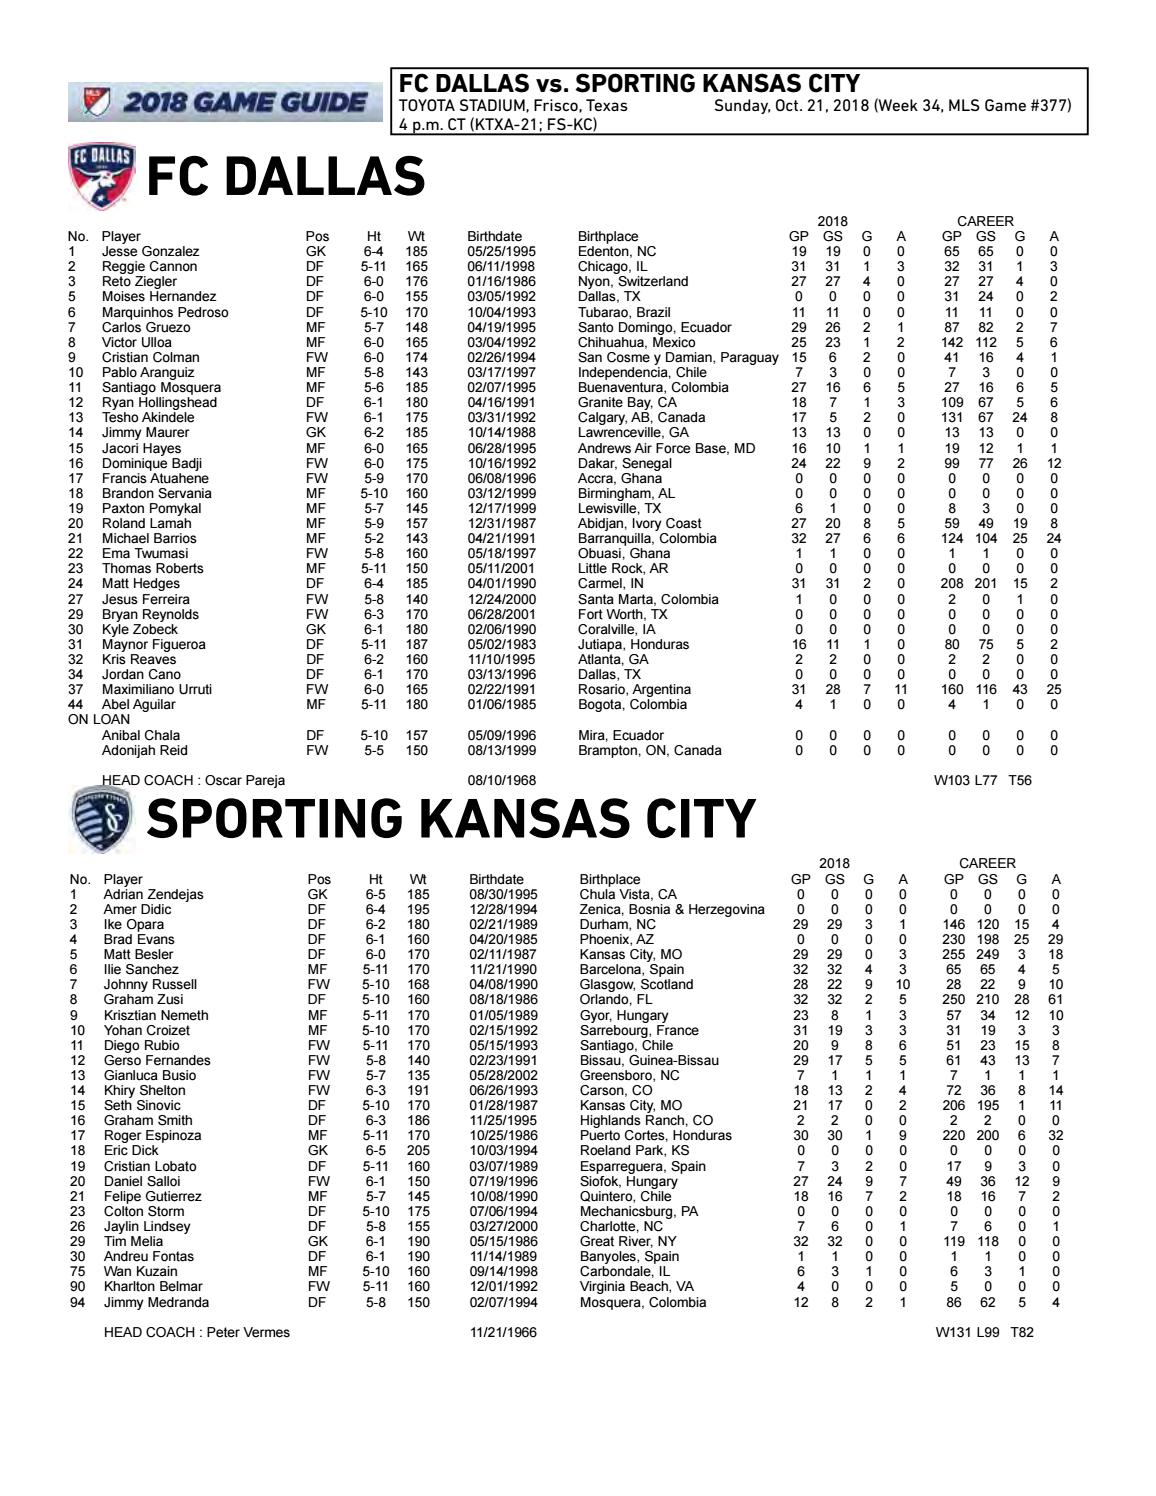 Game Notes: Sporting KC at FC Dallas | Oct  21, 2018 by